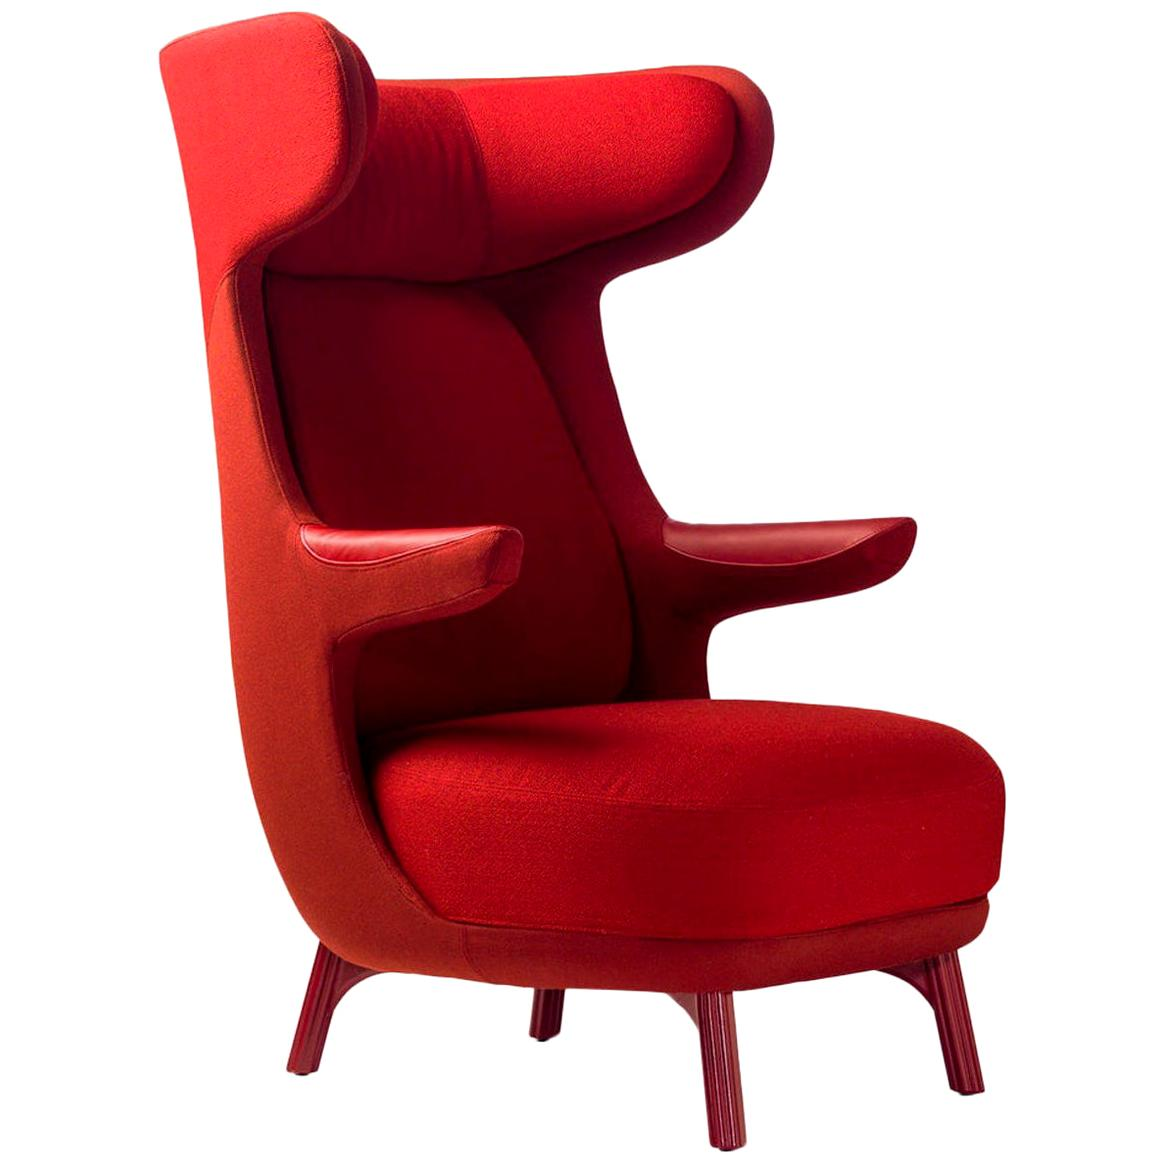 Jaime Hayon, Contemporary Monocolor Red Fabric Leather Upholstery Dino Armchair